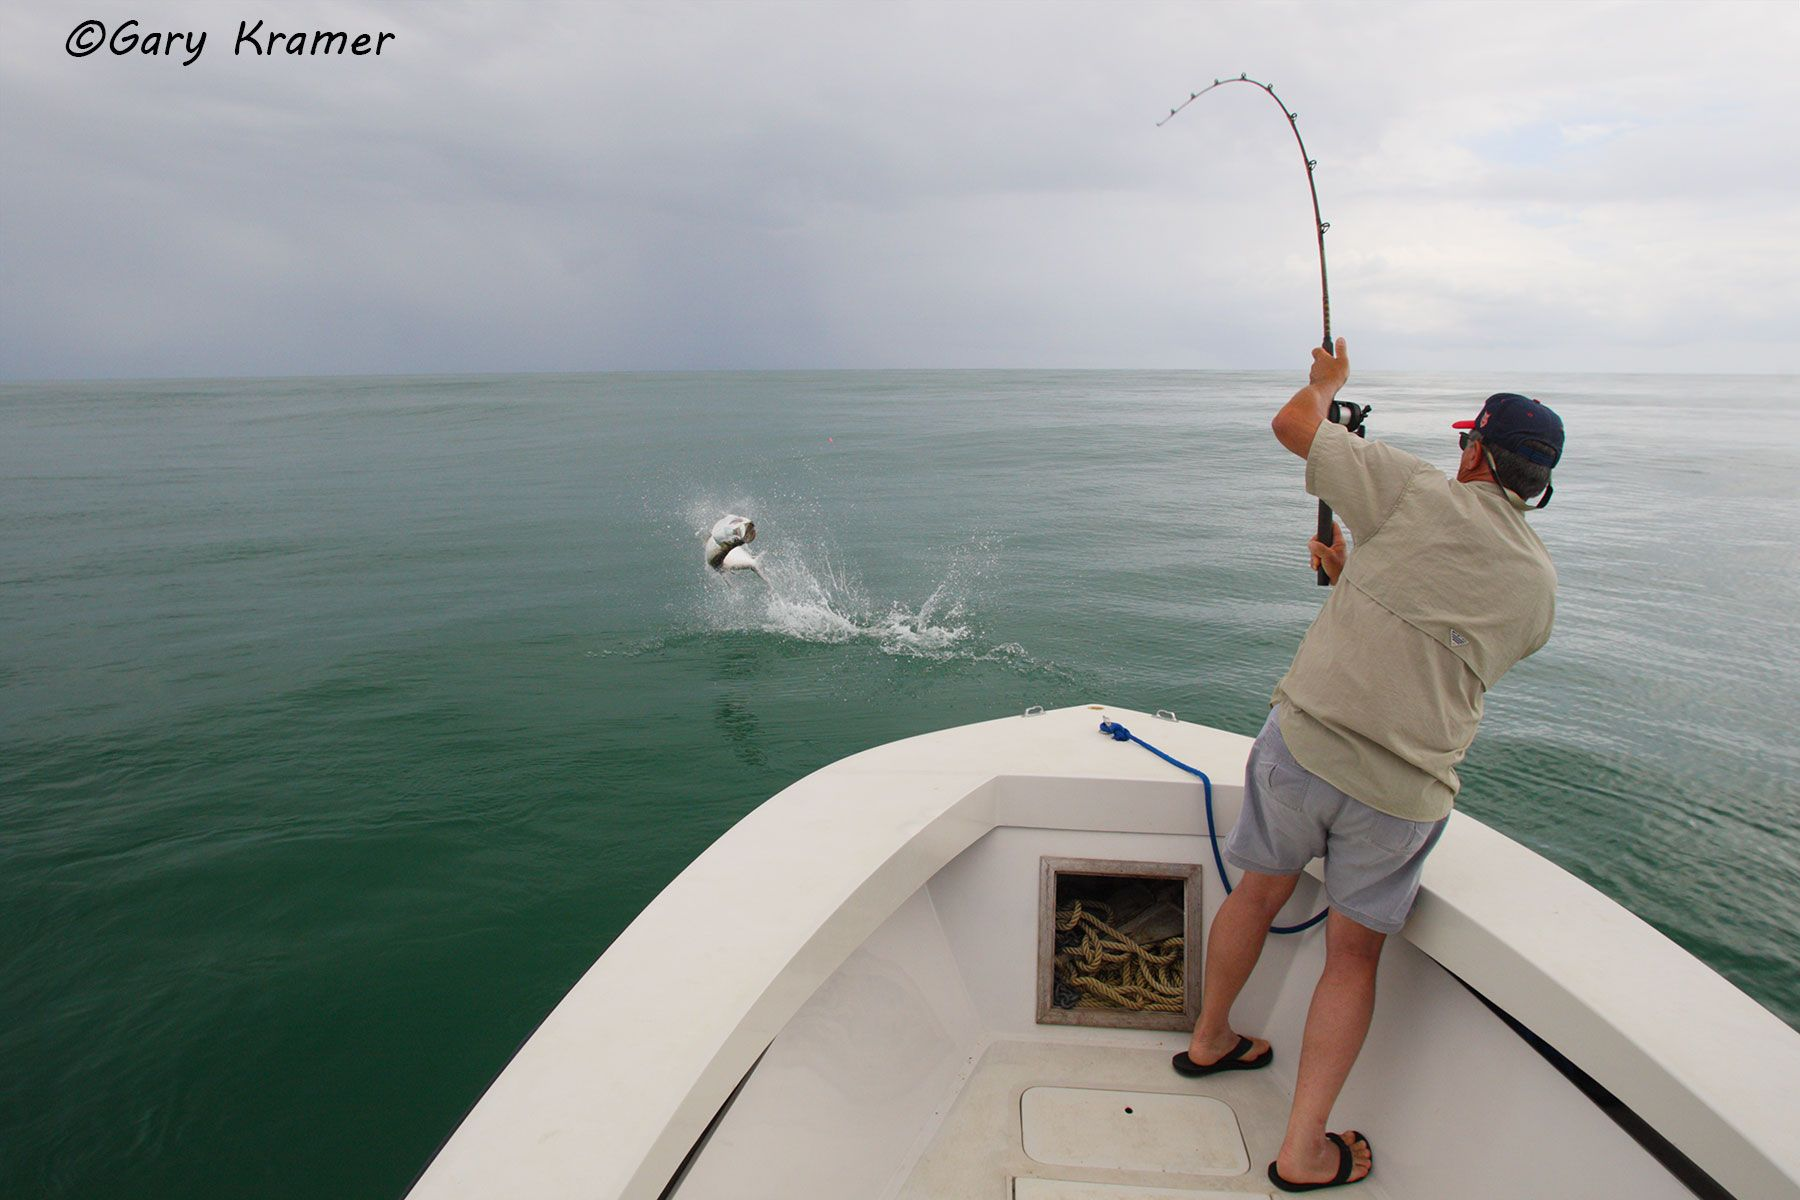 Angler fighting Tarpon, Panama - NFTf#014d